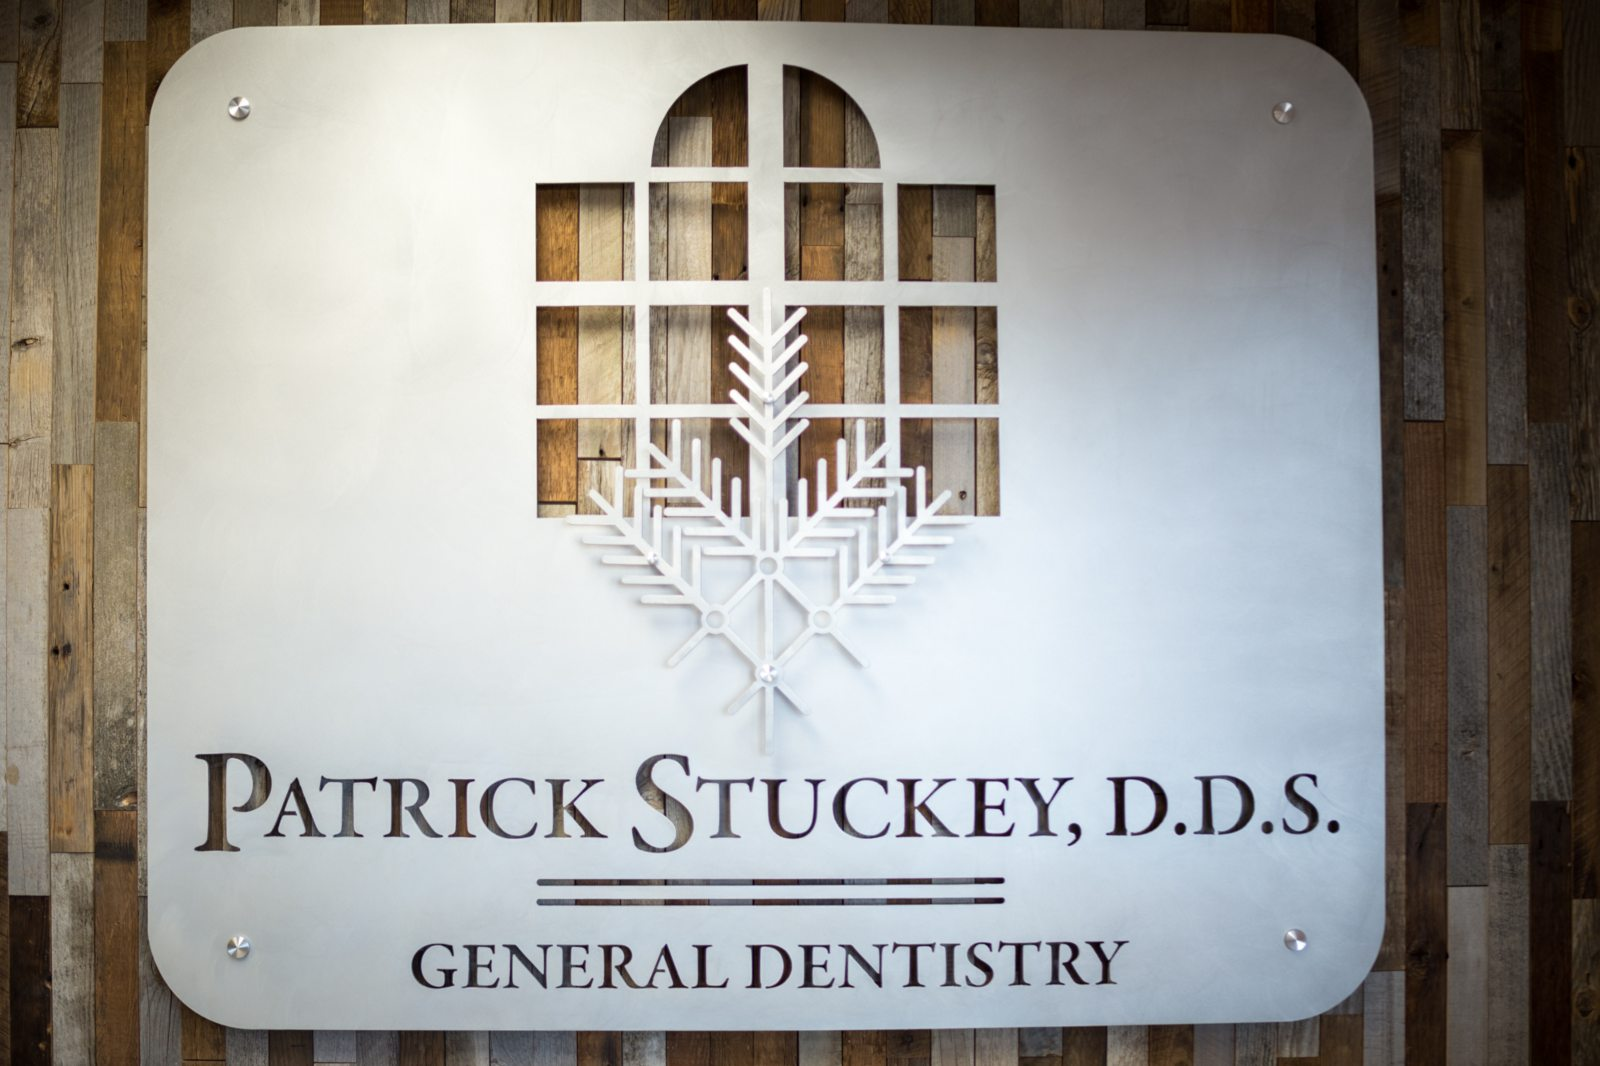 Welcome to Patrick Stuckey, DDS